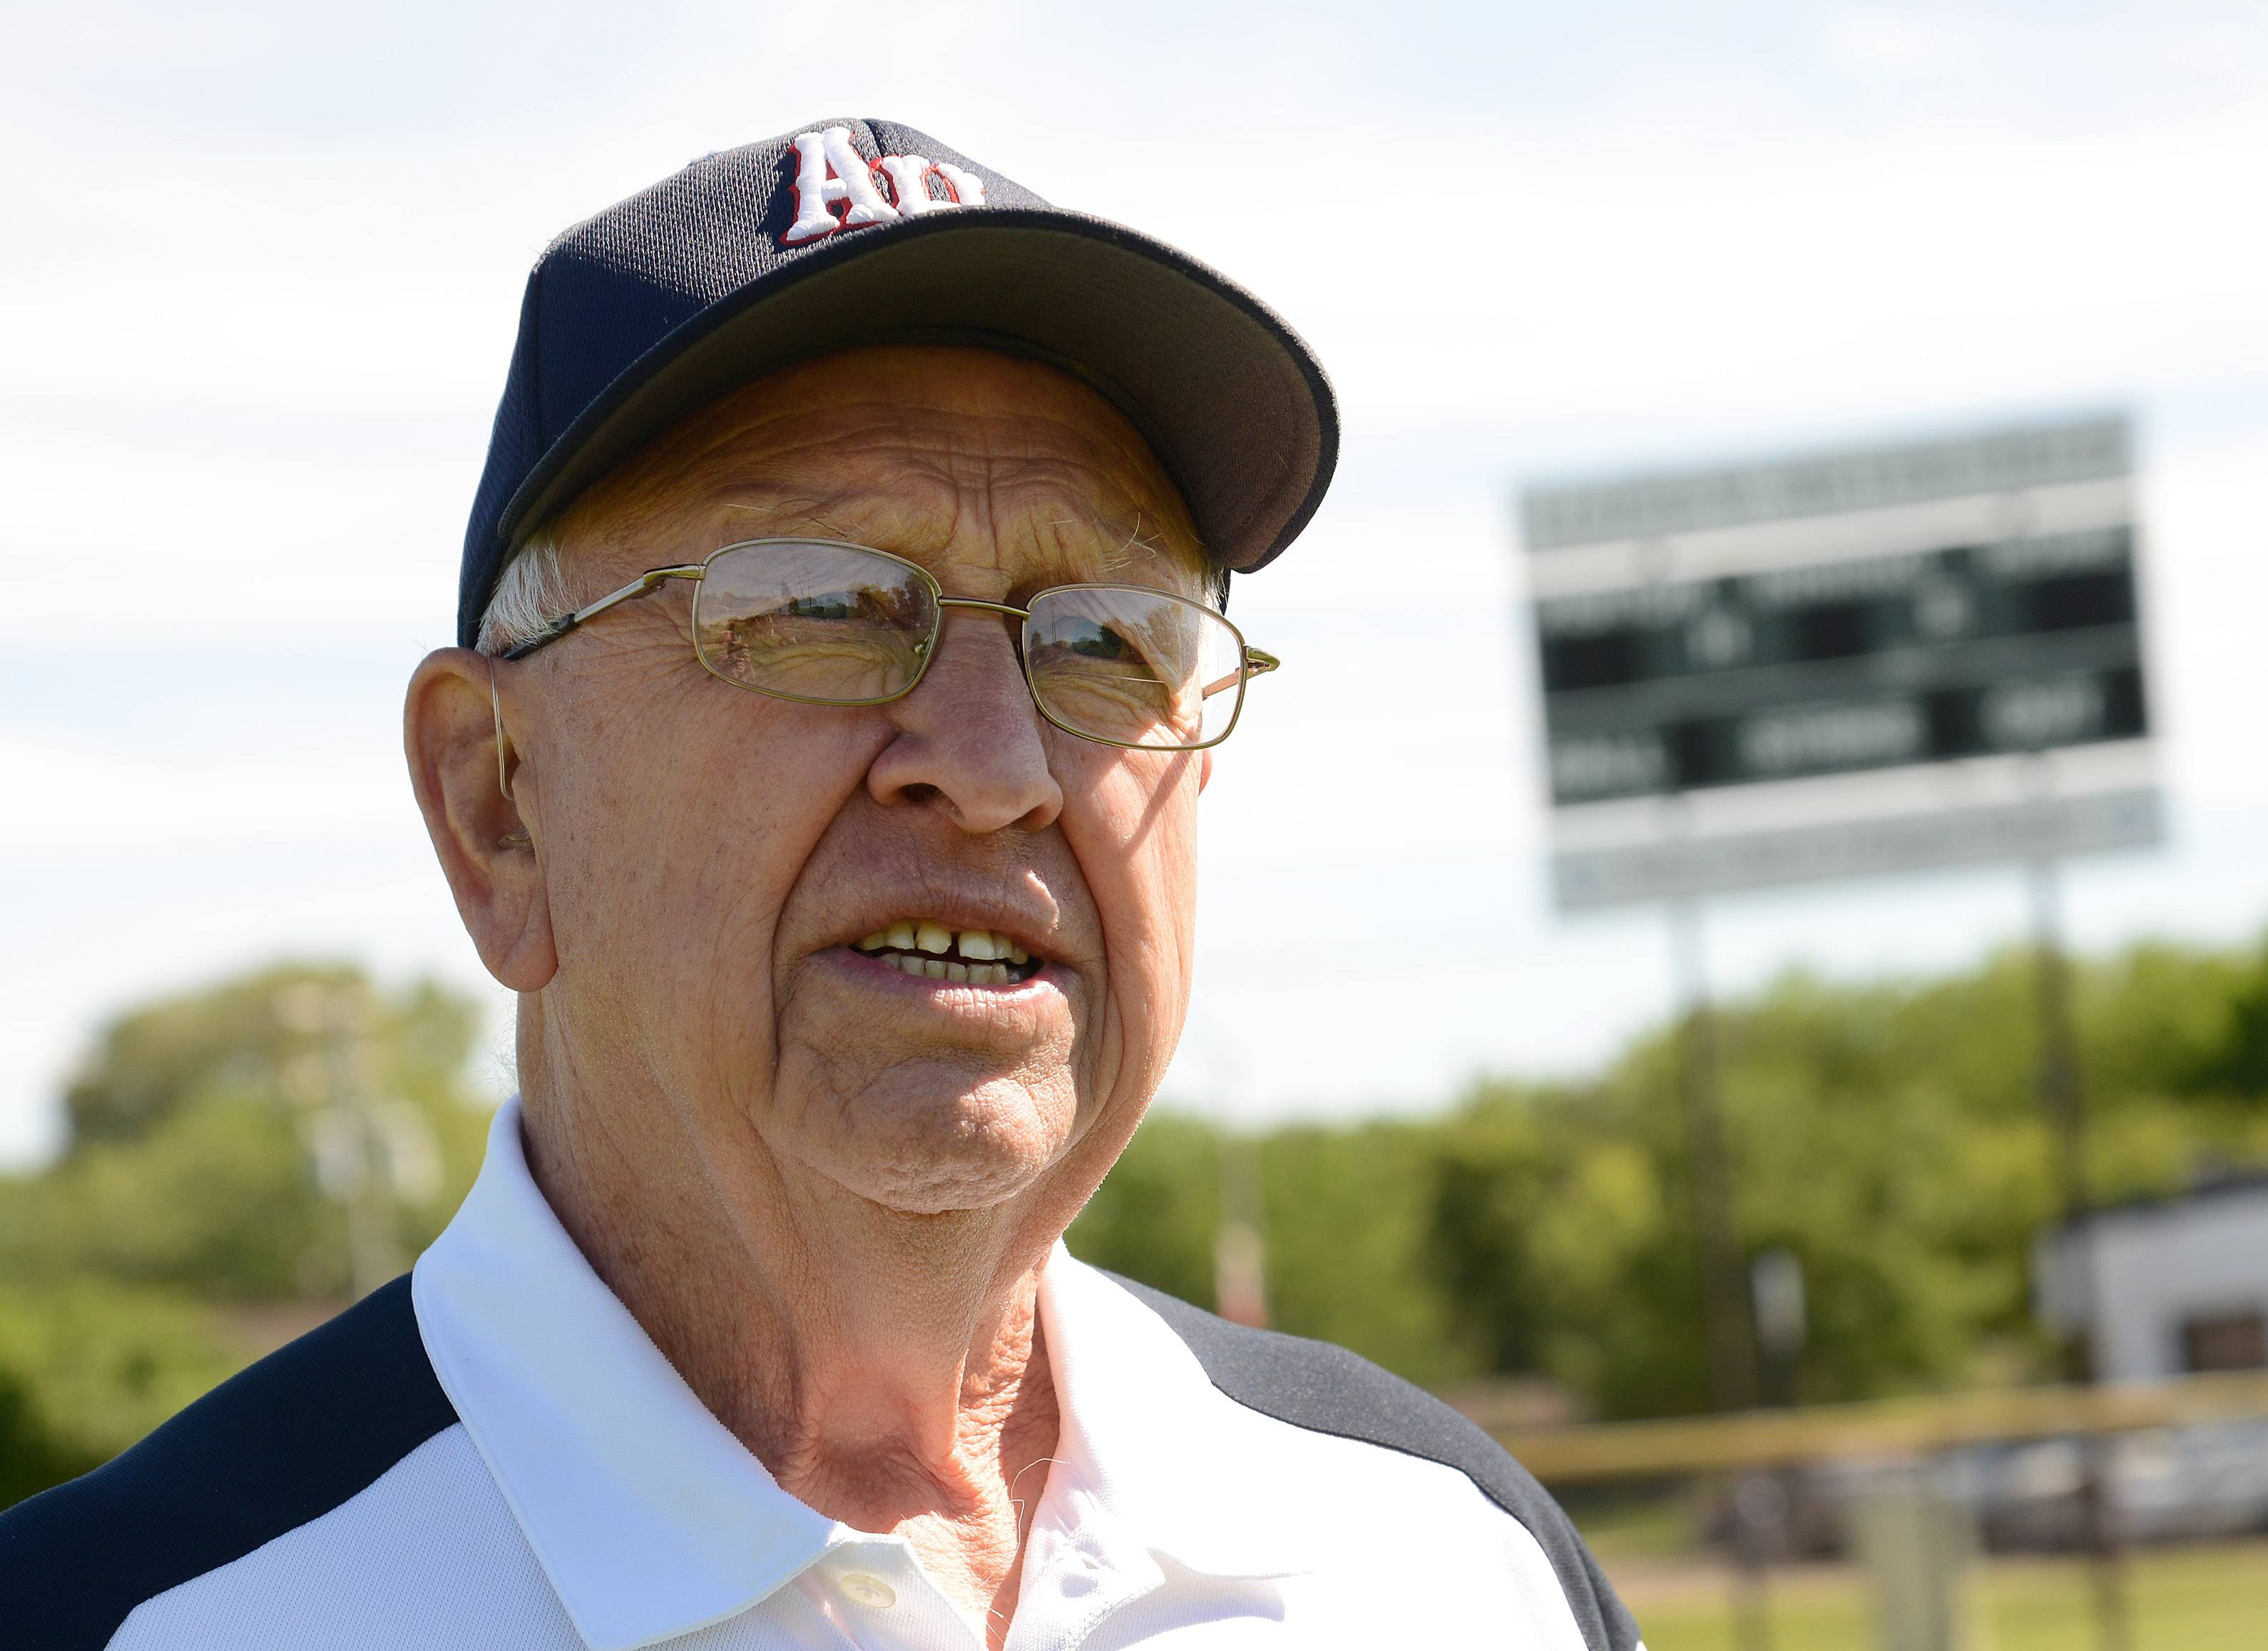 Lloyd Meyer is starting his 61st year of coaching American Legion baseball.